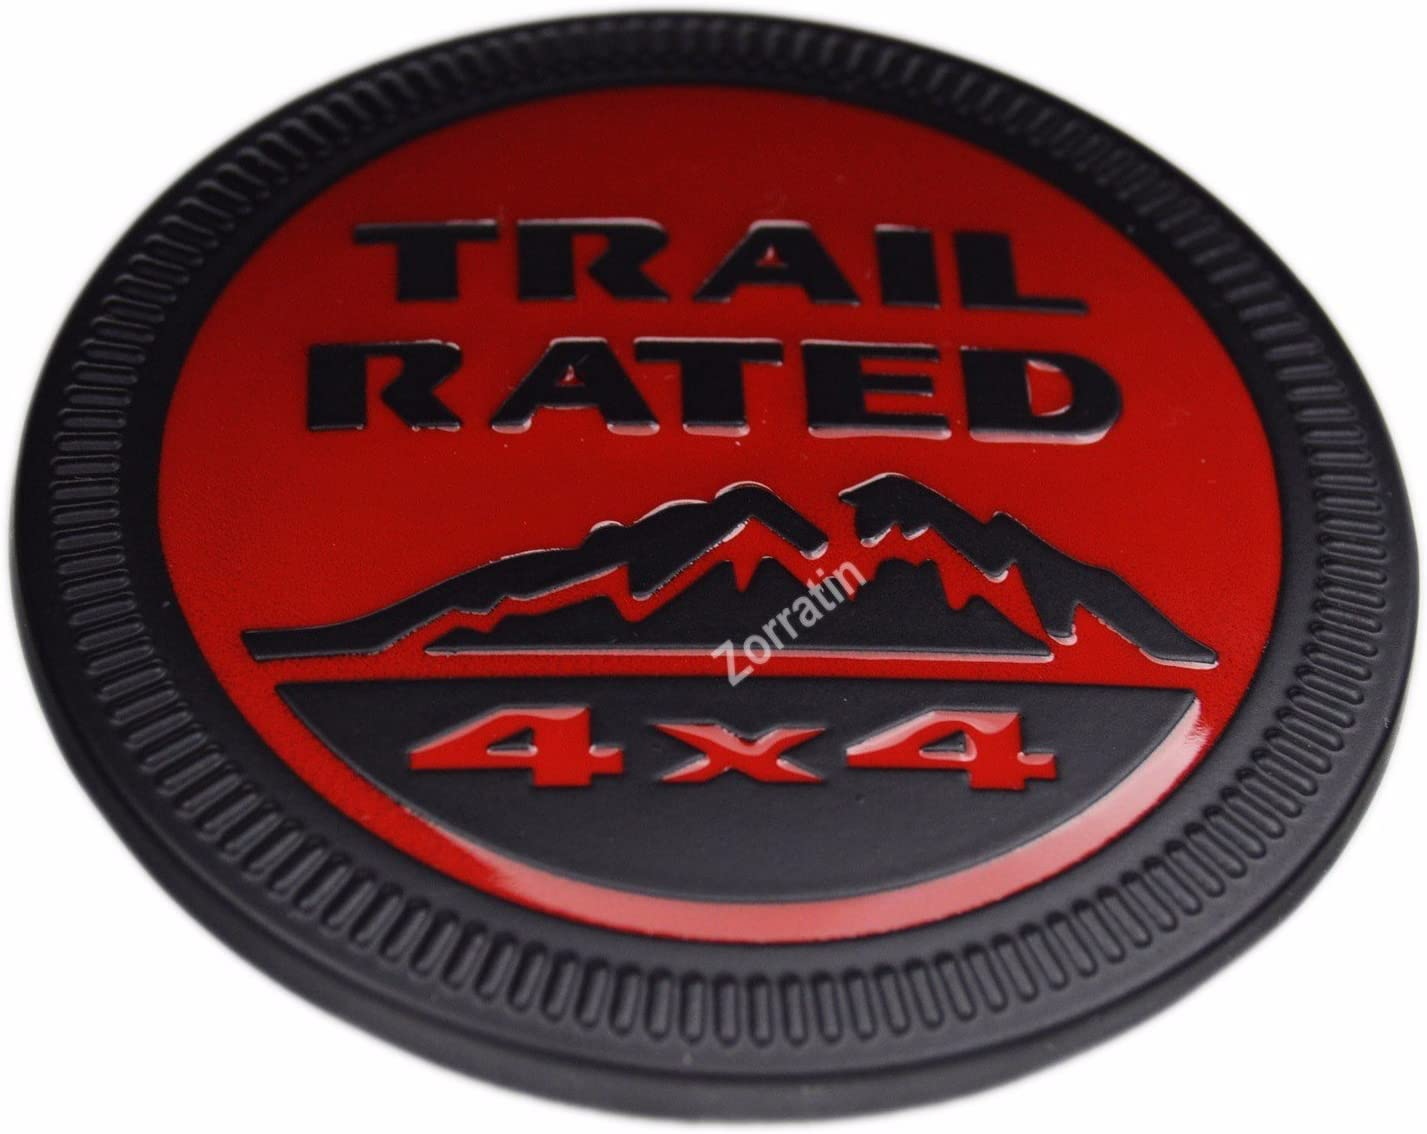 zorratin Metal Trail Rated 4x4 Round Emblem Badge Decal for Jeep Wrangler Unlimited JK Cherookee Rubicon Liberty Patriot Latitude